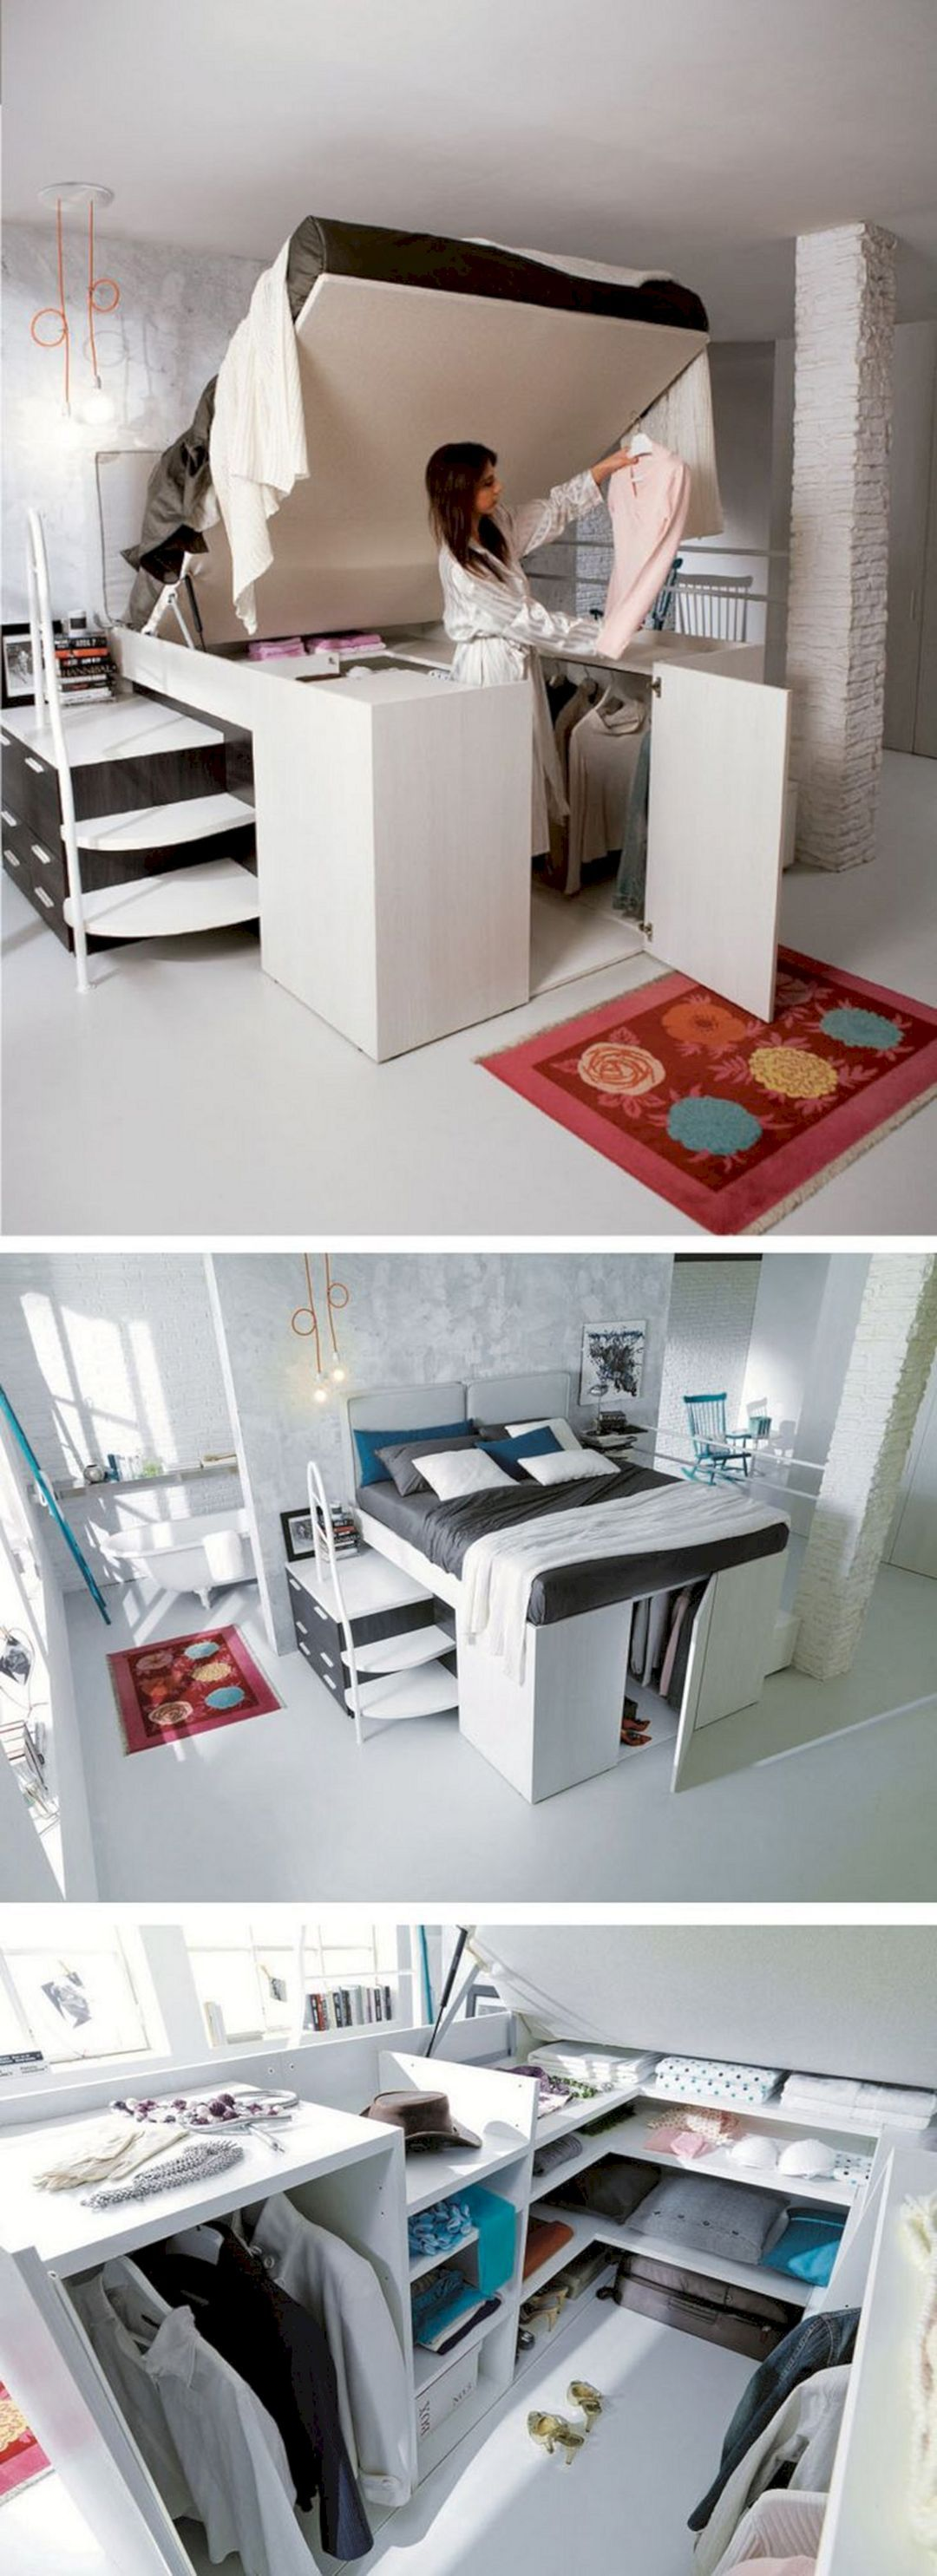 85 Marvelous Bedroom Storage Ideas for Small Spaces for Your Perfect ...